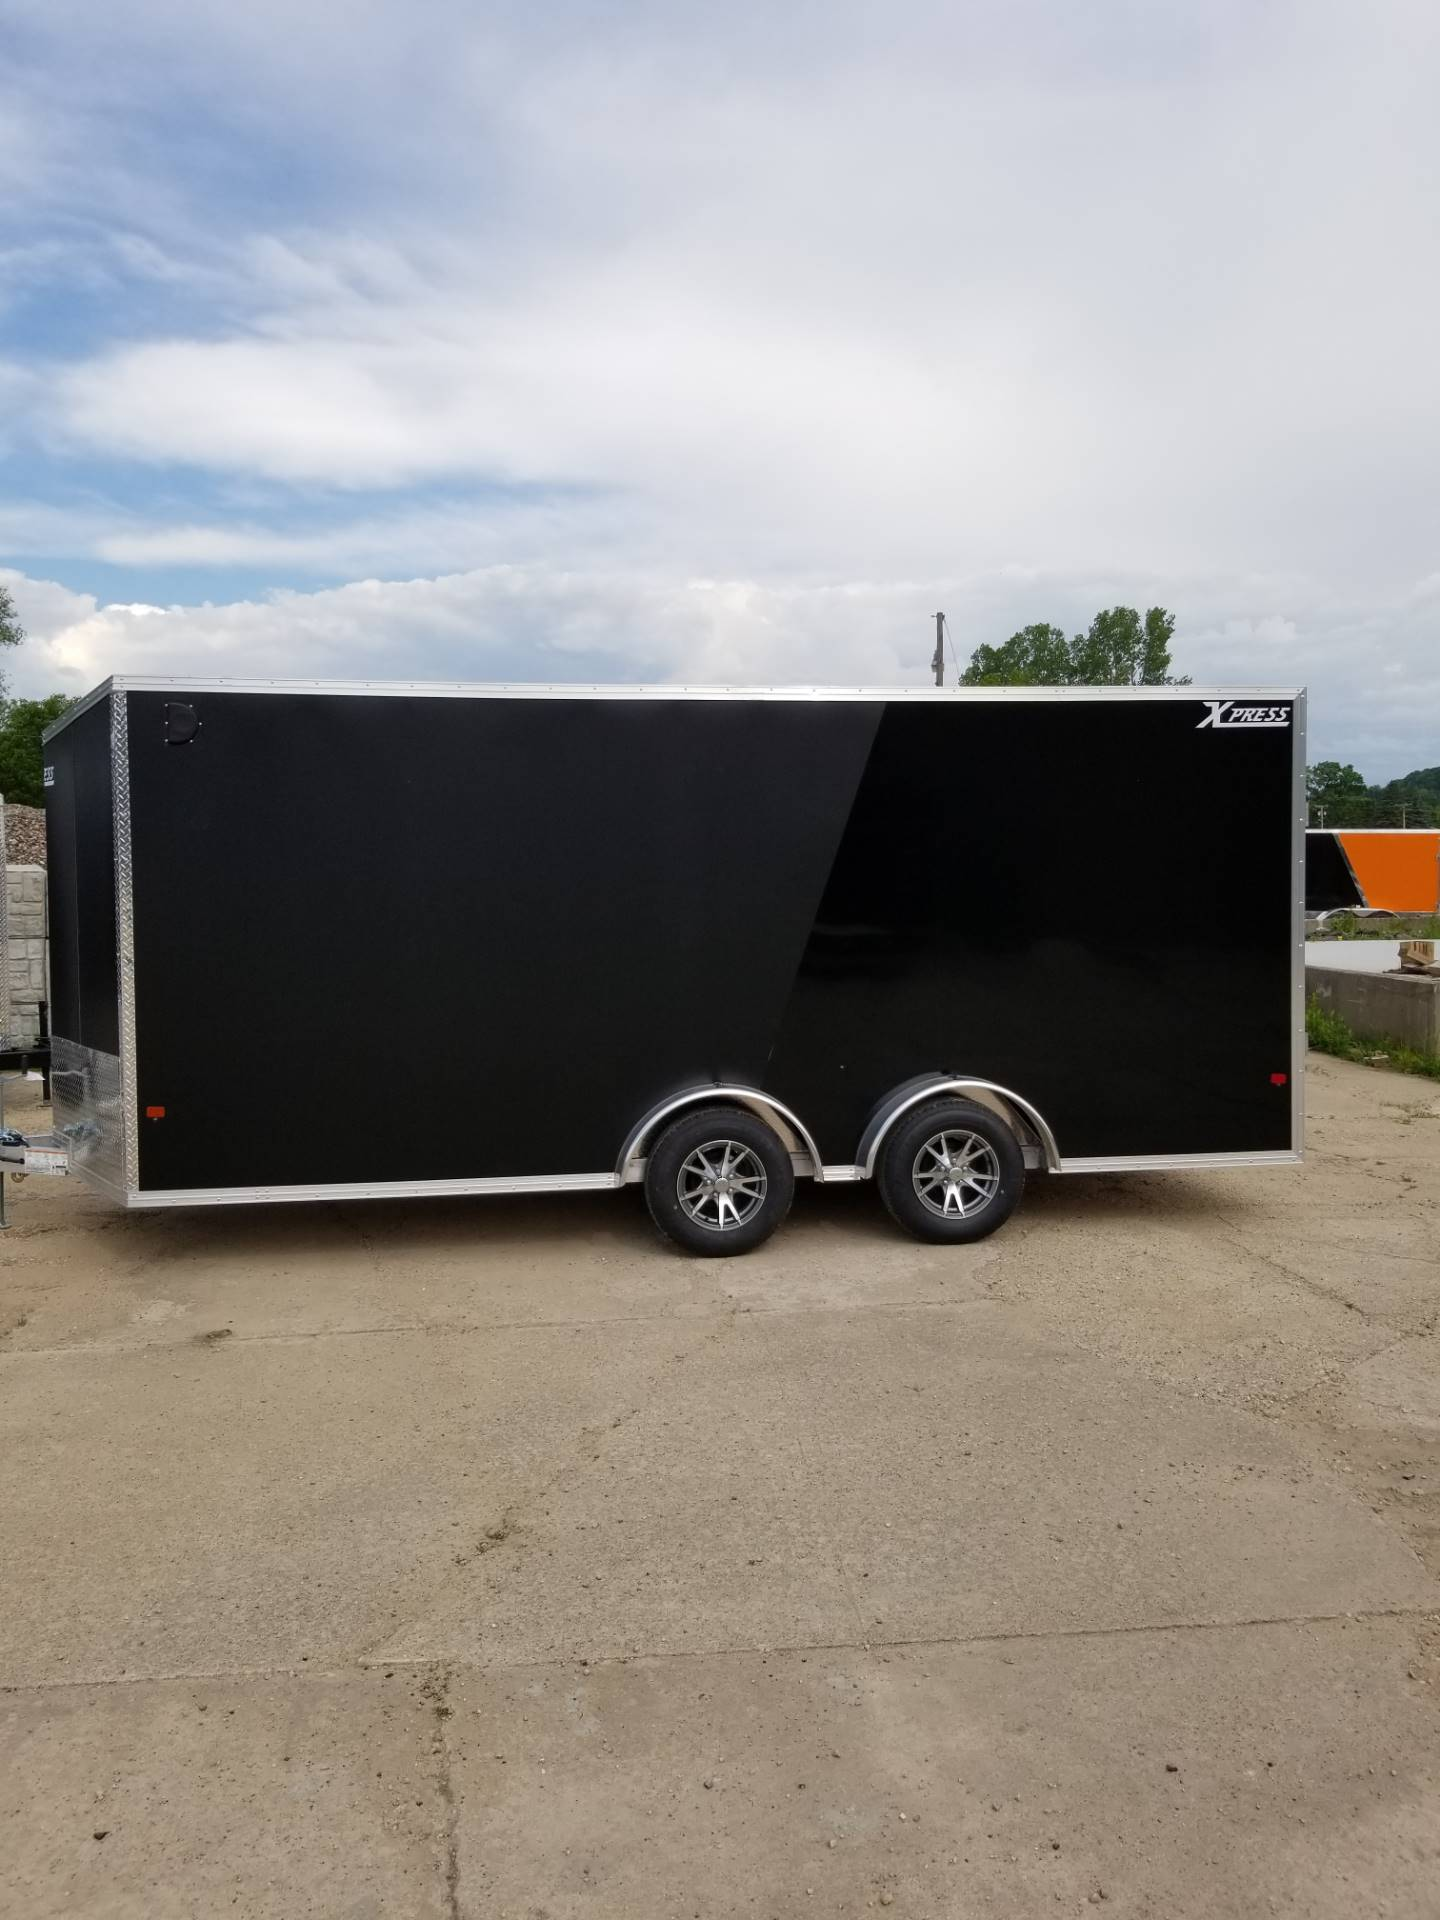 2019 ALCOM  xpress 7.5 x 18 in Hillsboro, Wisconsin - Photo 1